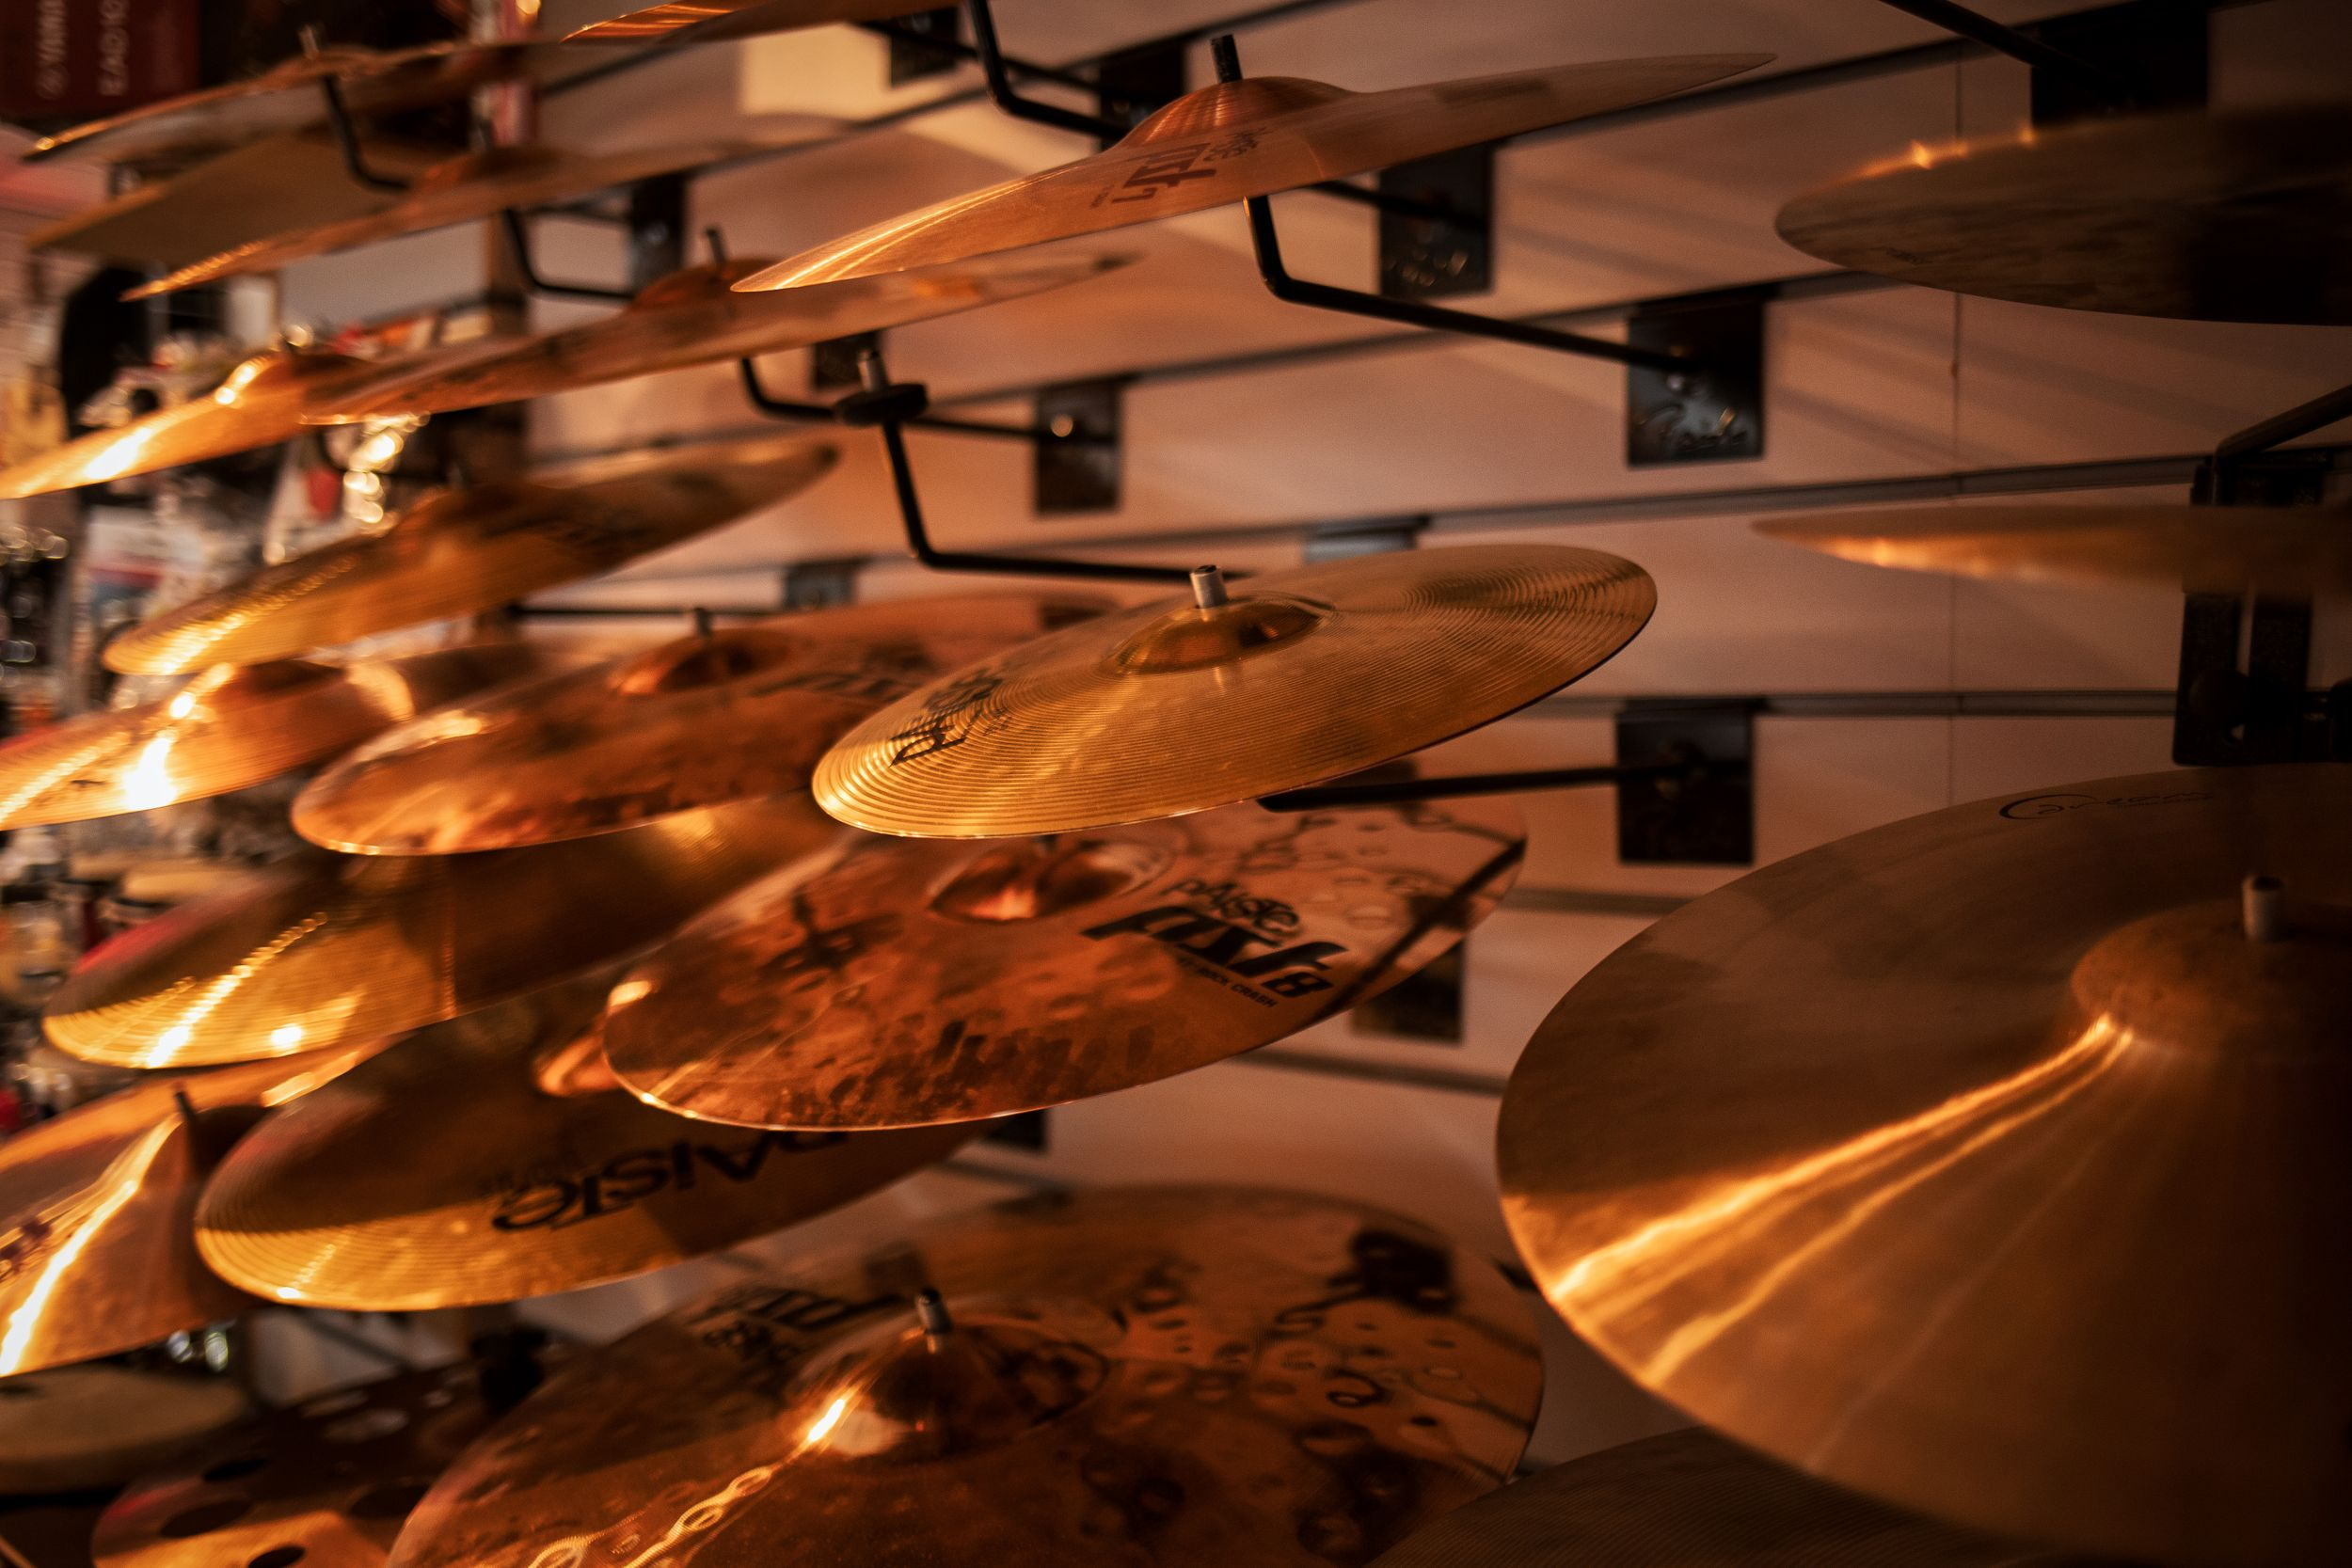 Light falling beautifully on this rack of Cymbals.